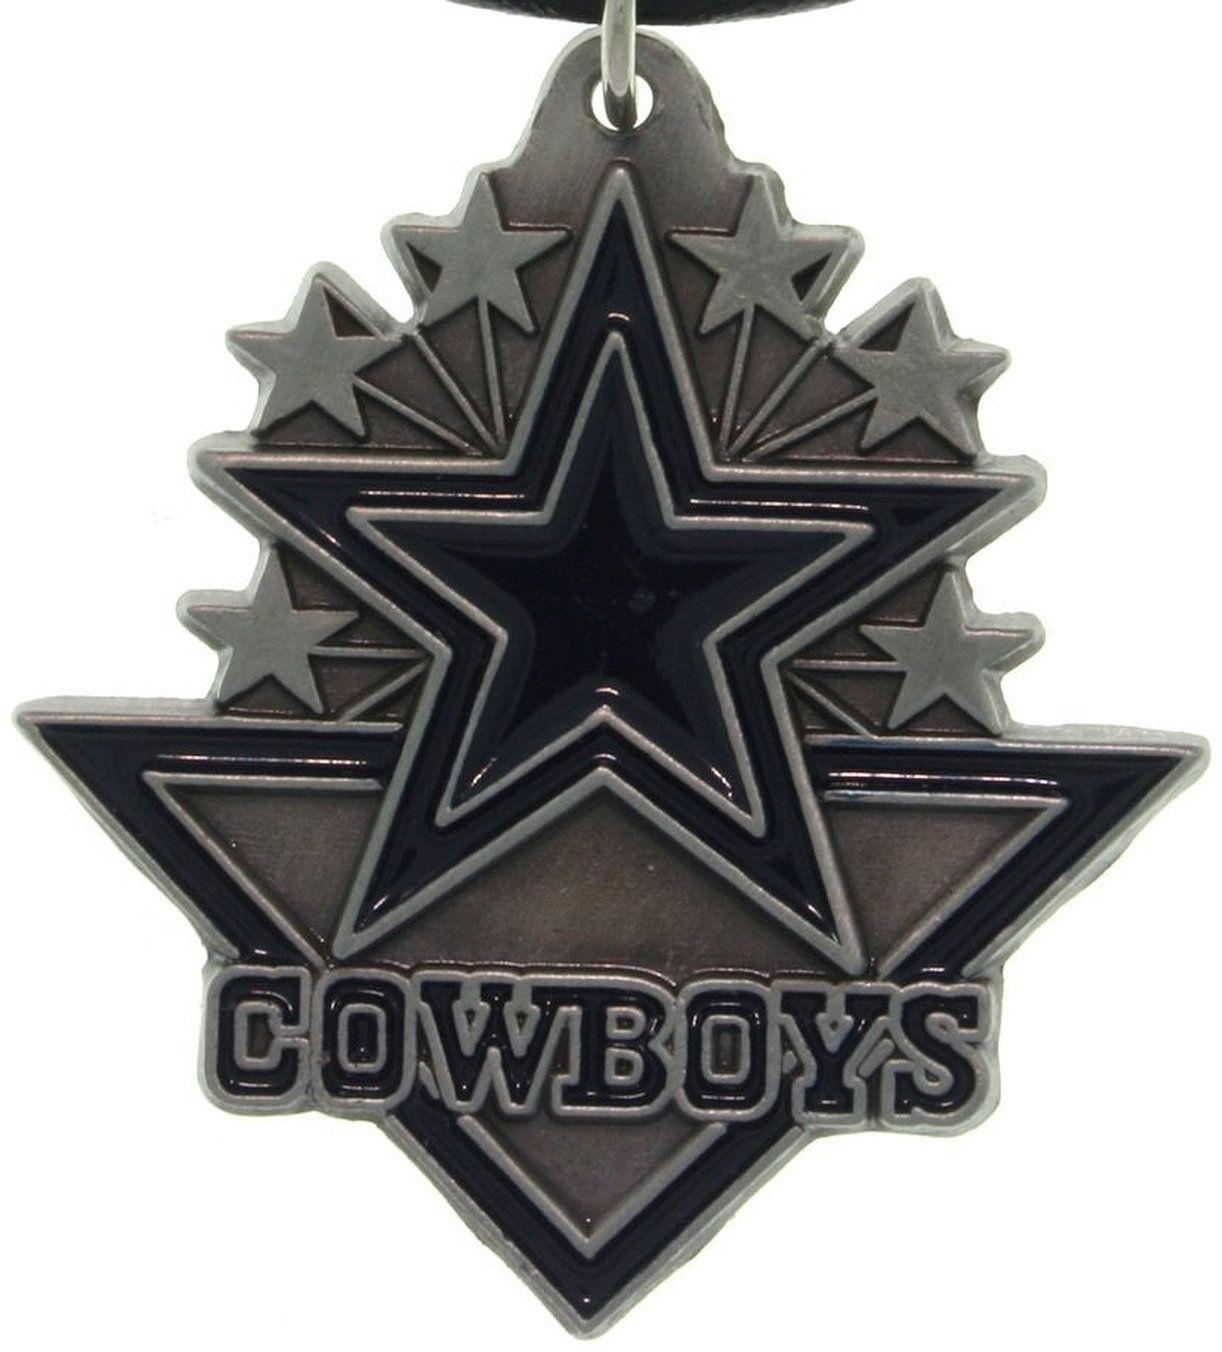 Jewelry Trends Pewter Dallas Cowboys NFL Pennant Pendant on Black Leather Necklace